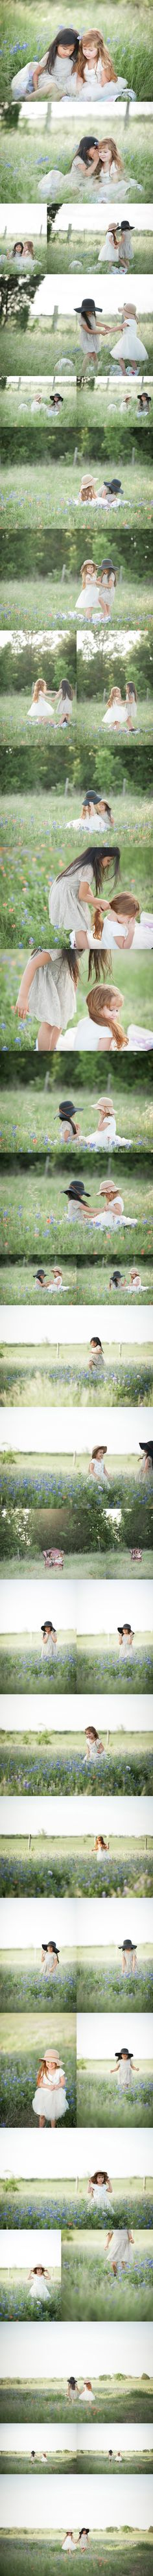 Anne and Diana inspired photo shoot